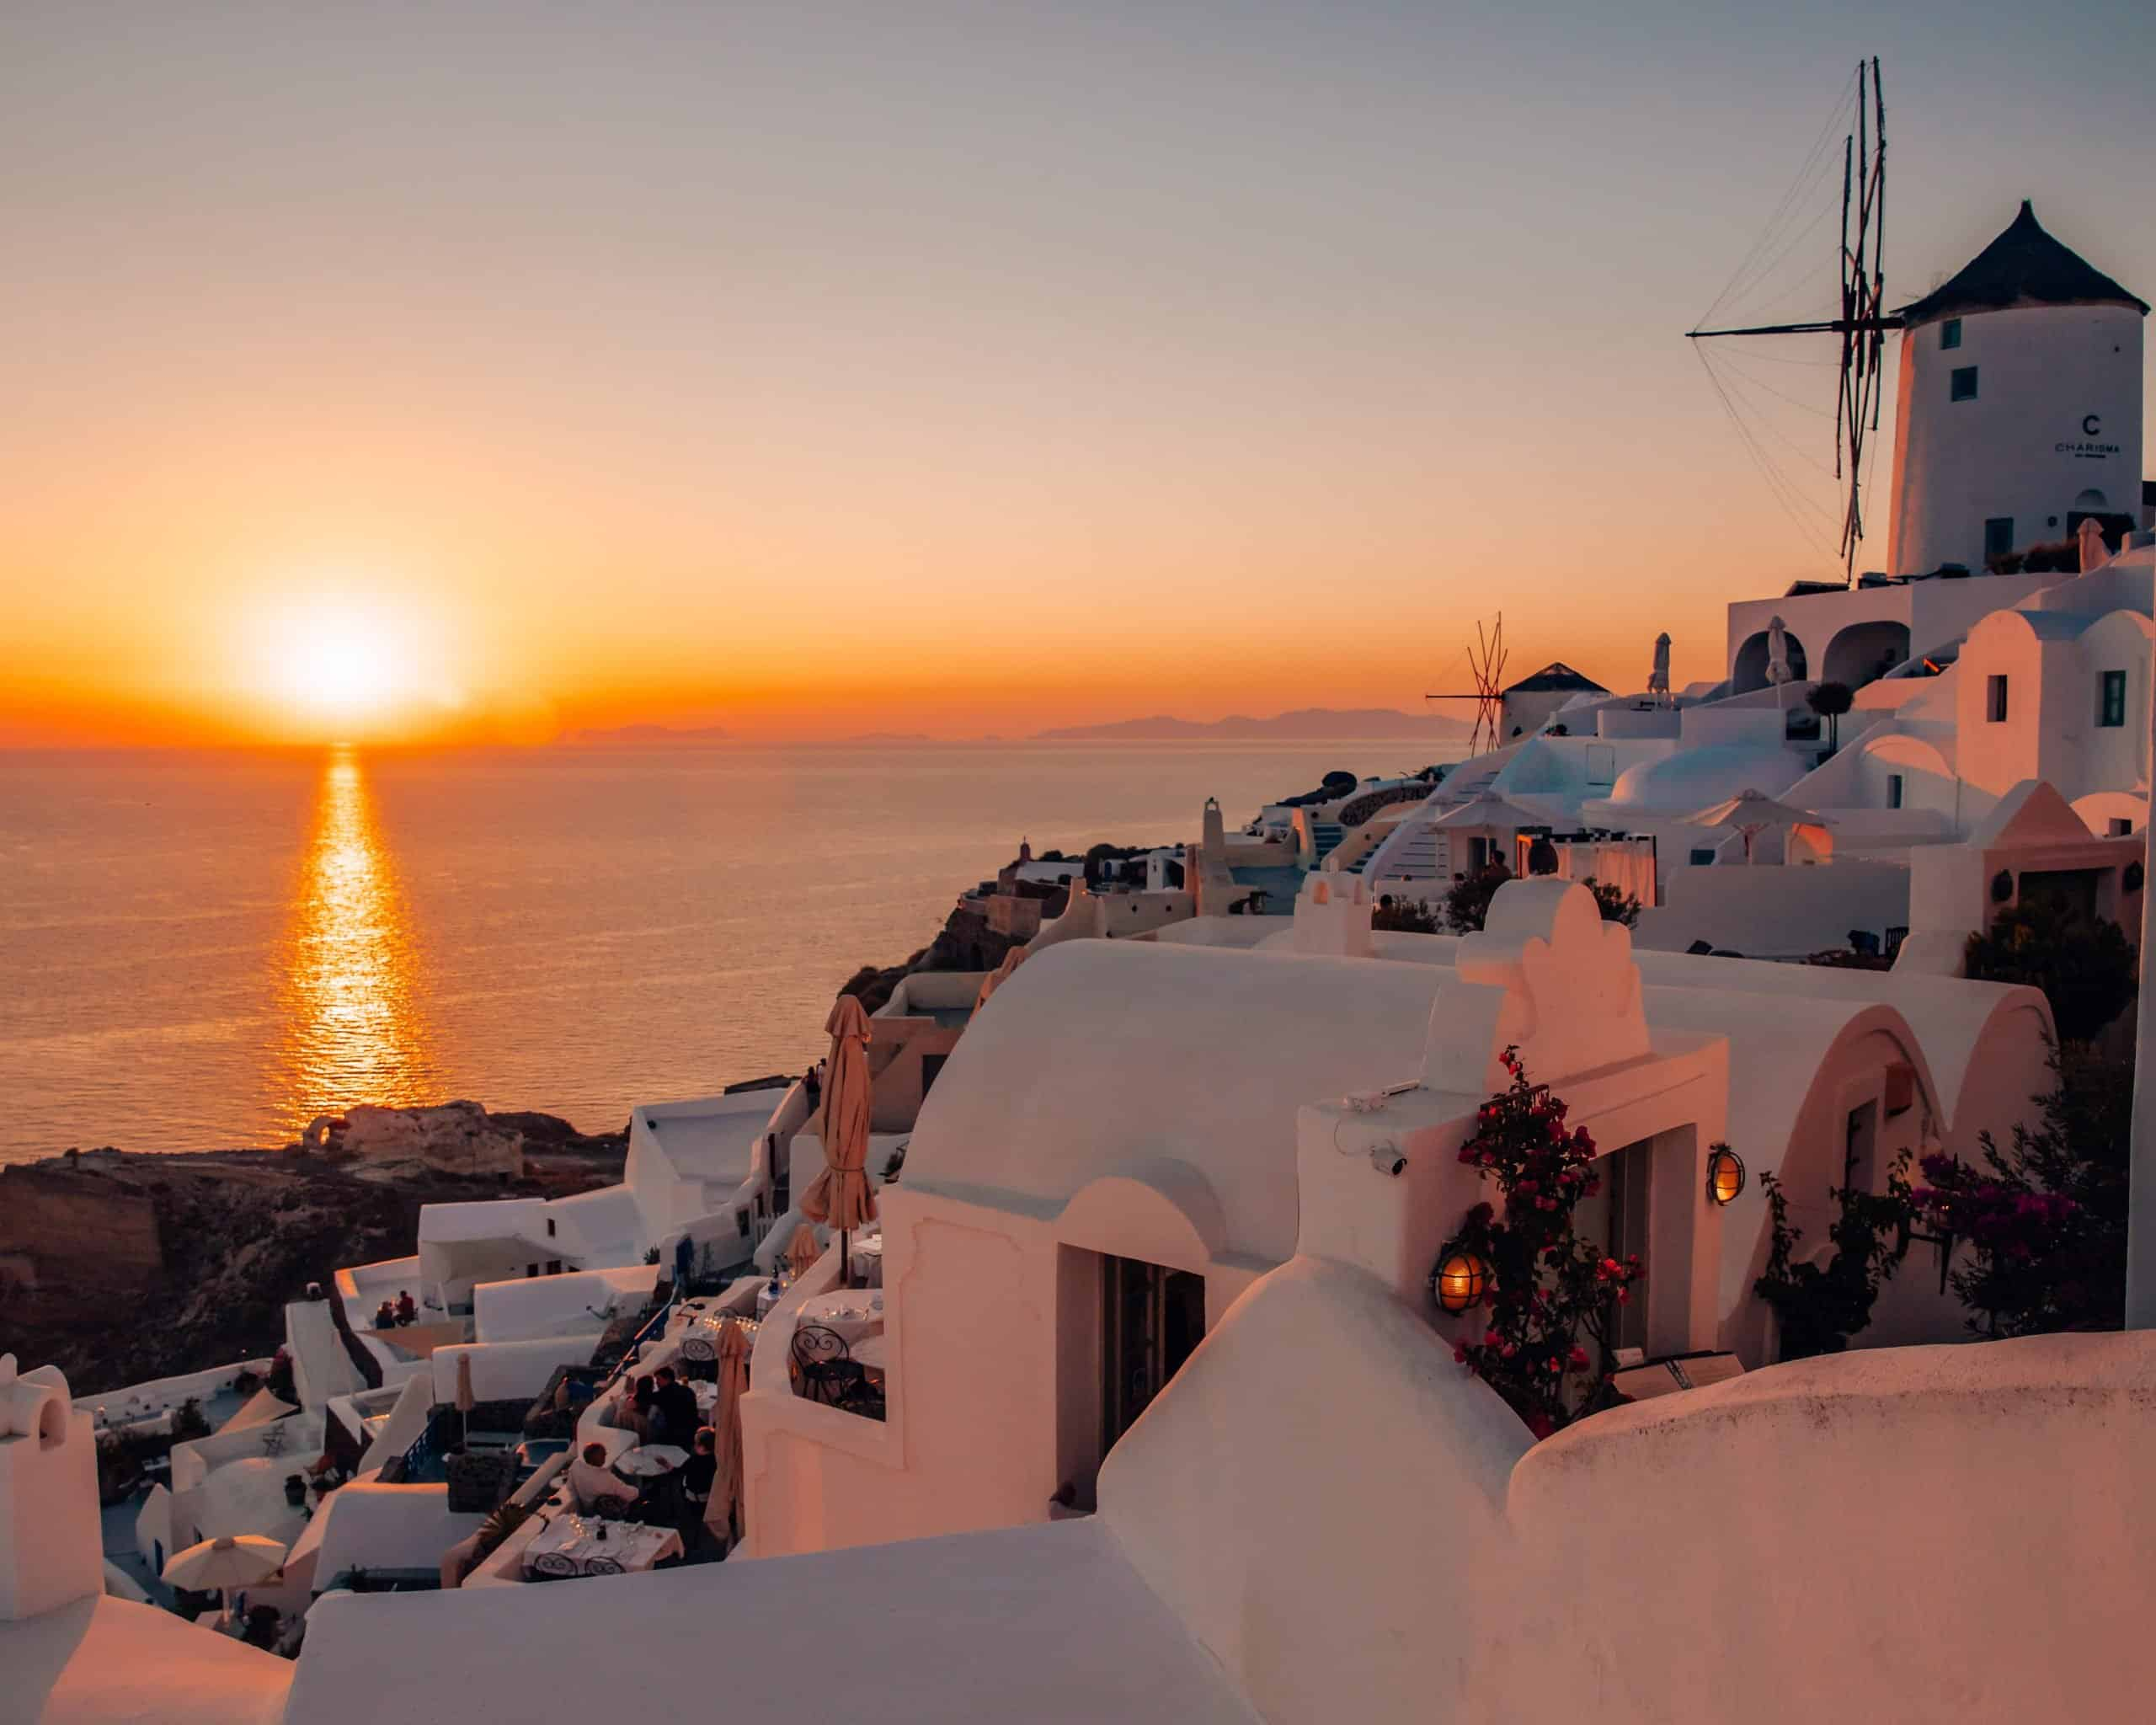 Sunset View with Windmill in Oia, Santorini